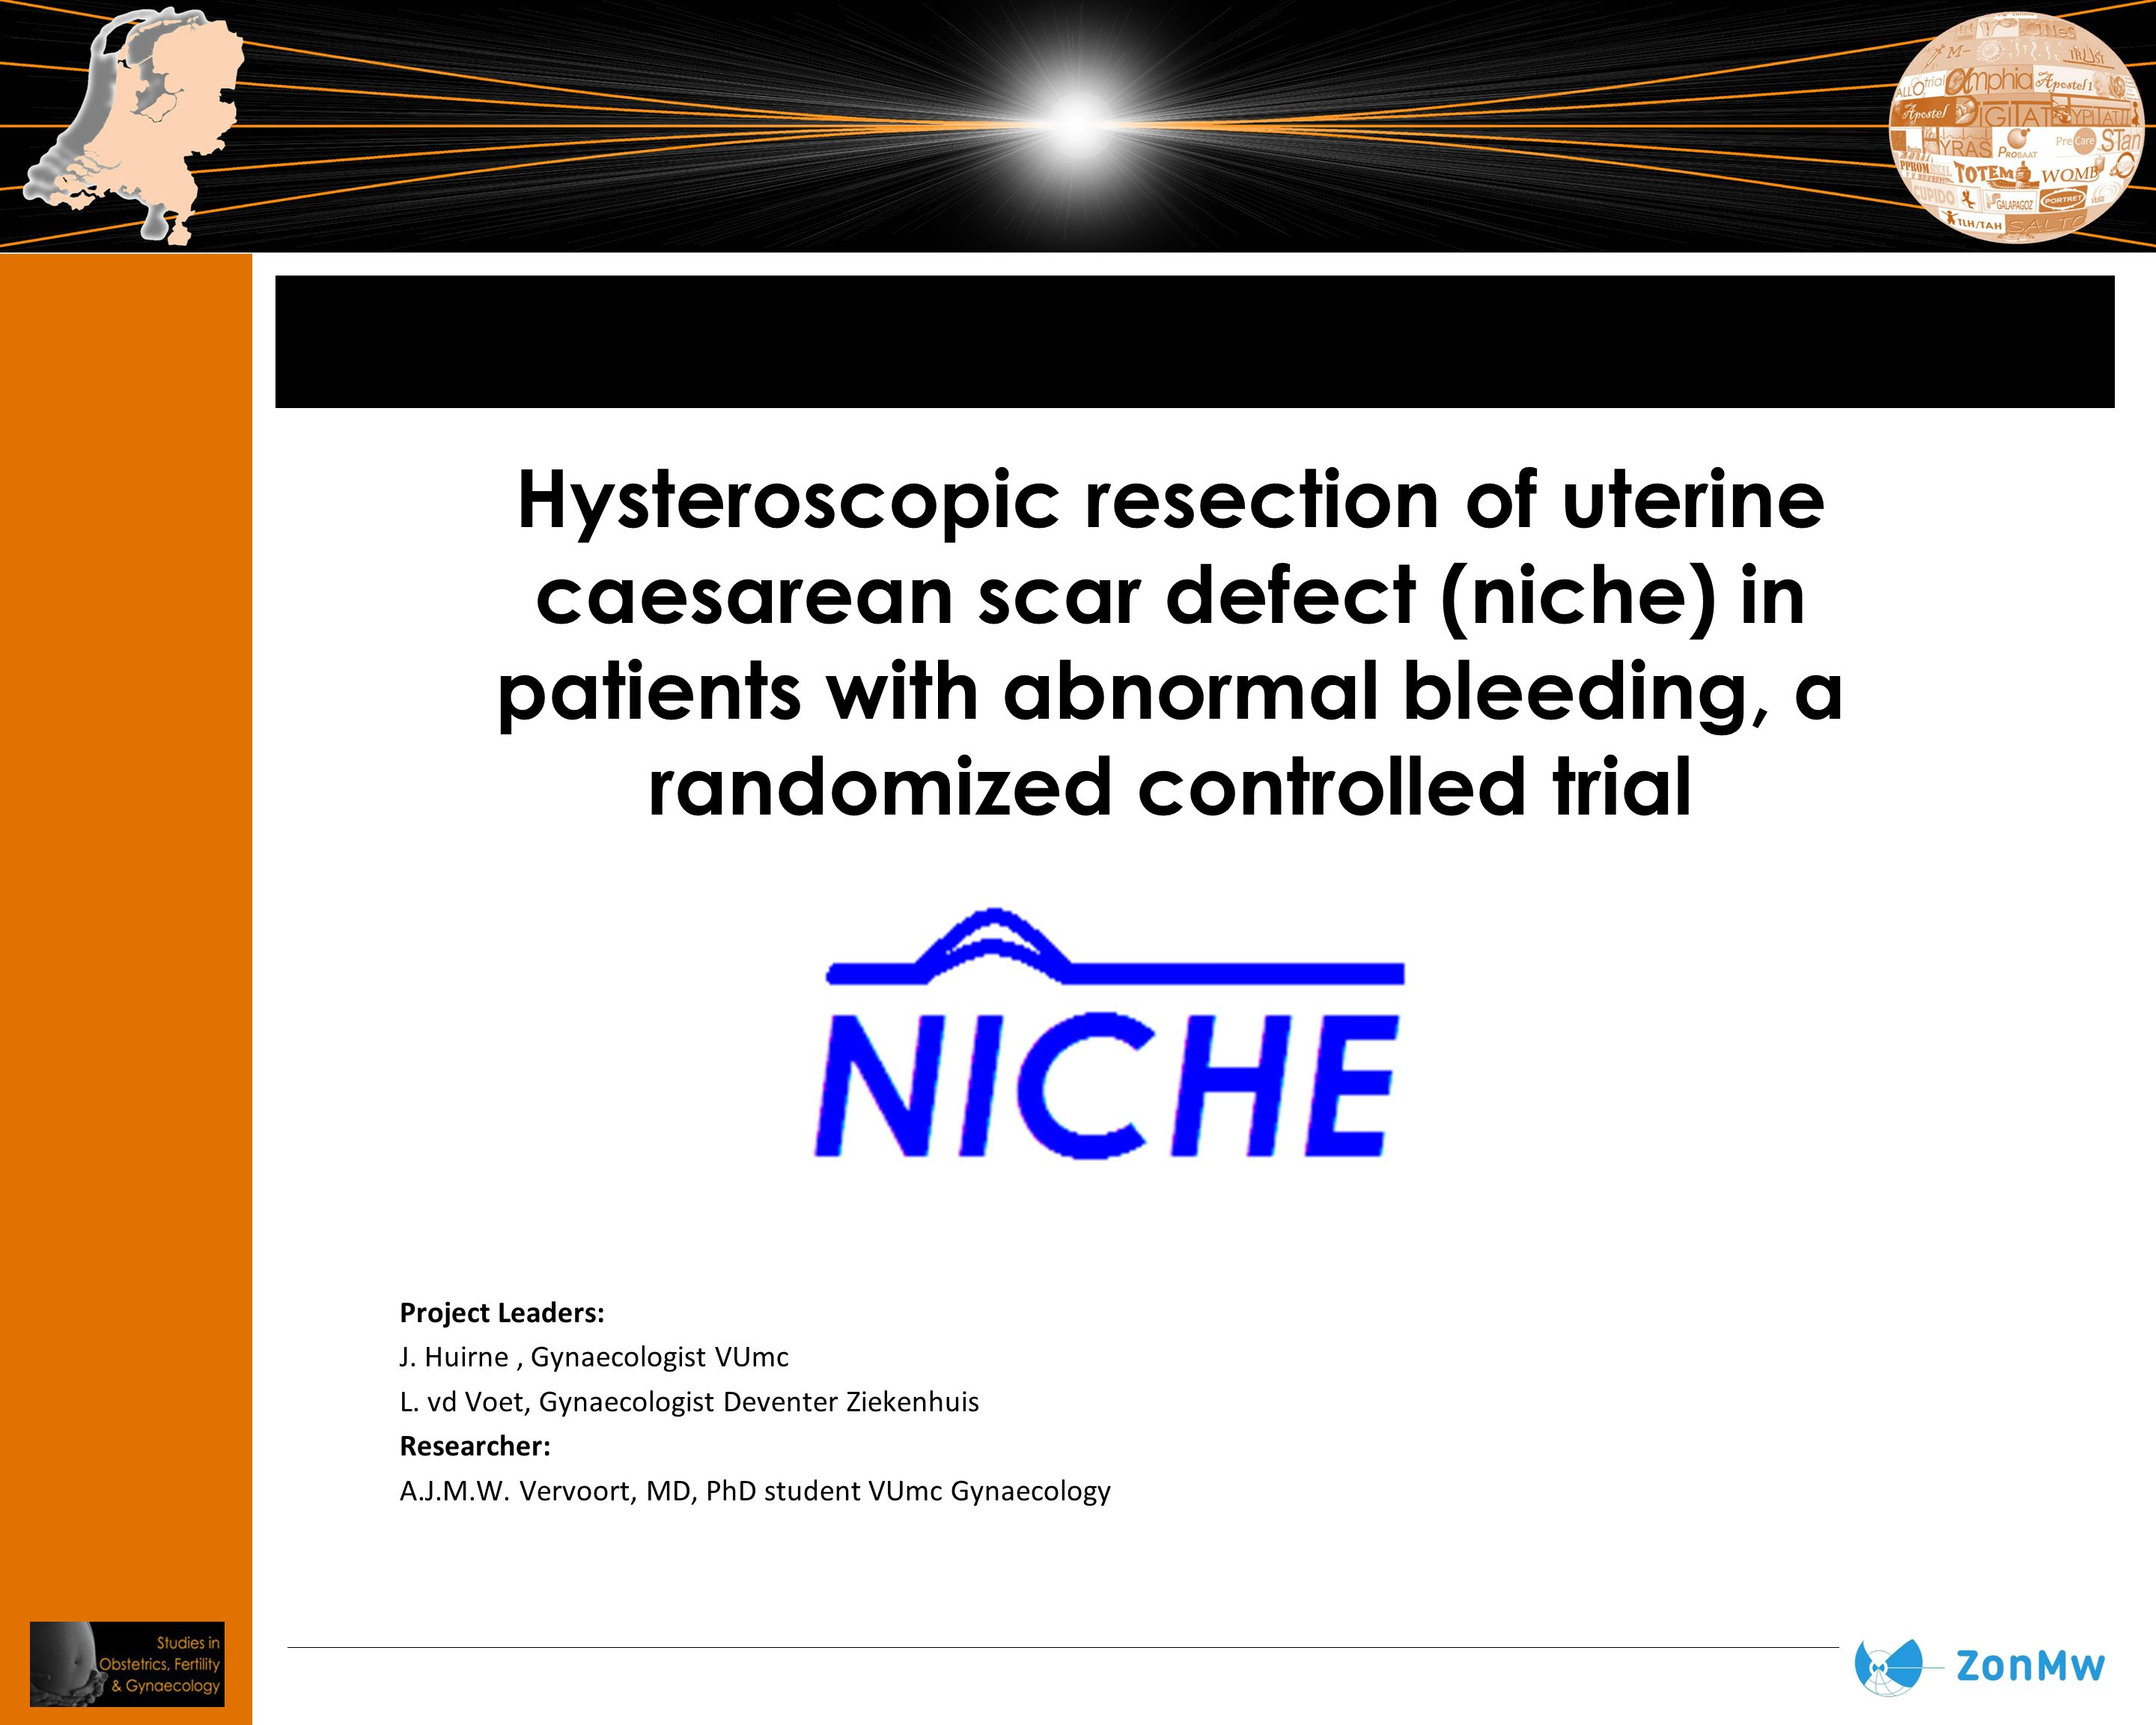 Hysteroscopic resection of uterine caesarean scar defect (niche) in patients with abnormal bleeding, a randomized controlled trial